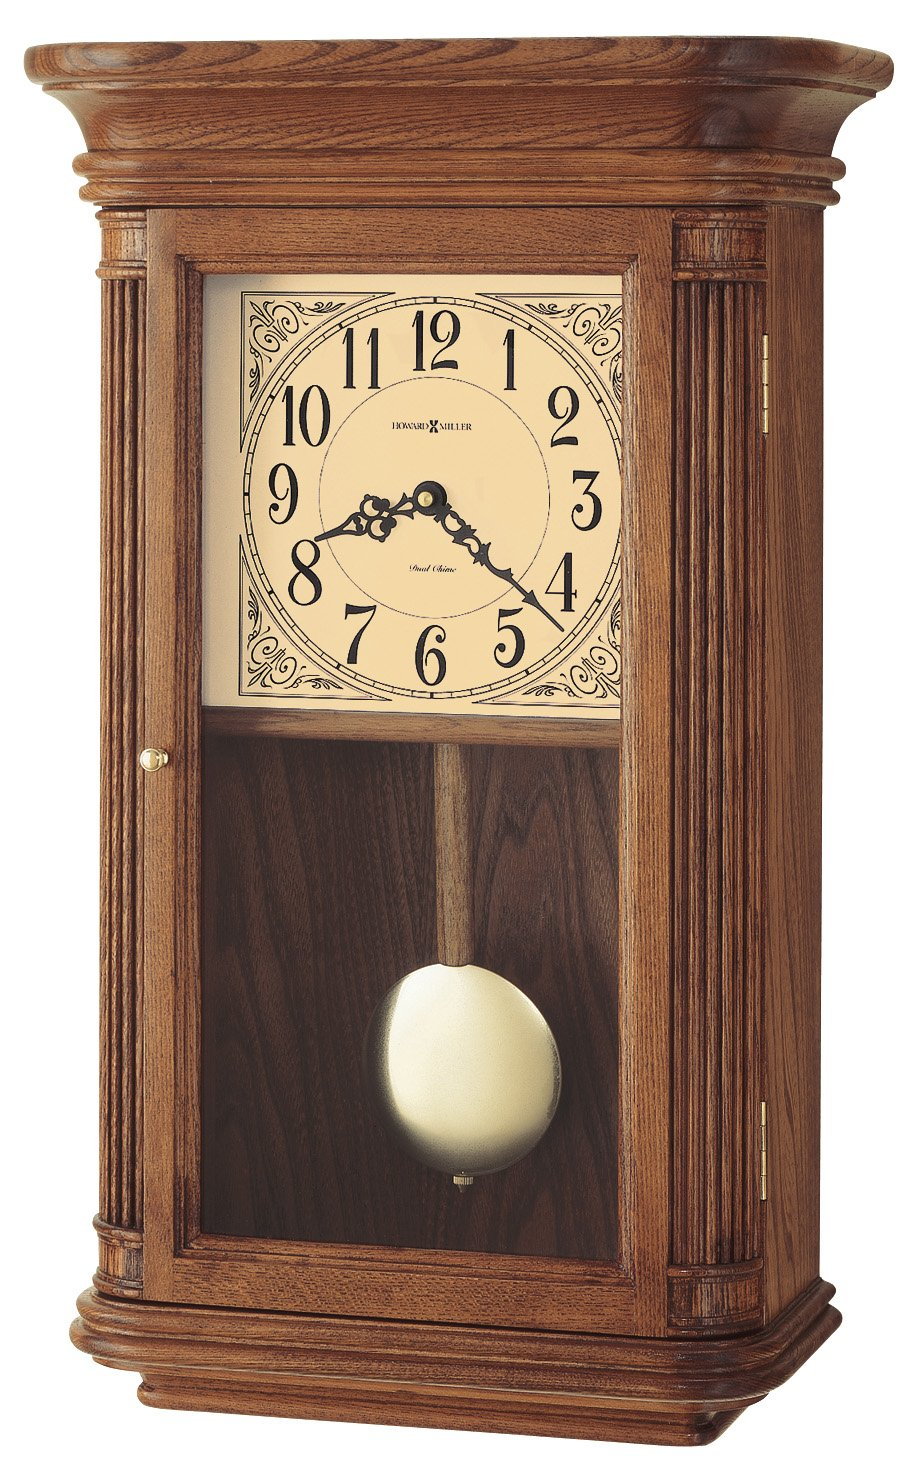 Homeware furniture home accessories clocks wall clocks elliot new howard miller westbrook 625 281 quartz wall clock oak dual chime amipublicfo Choice Image